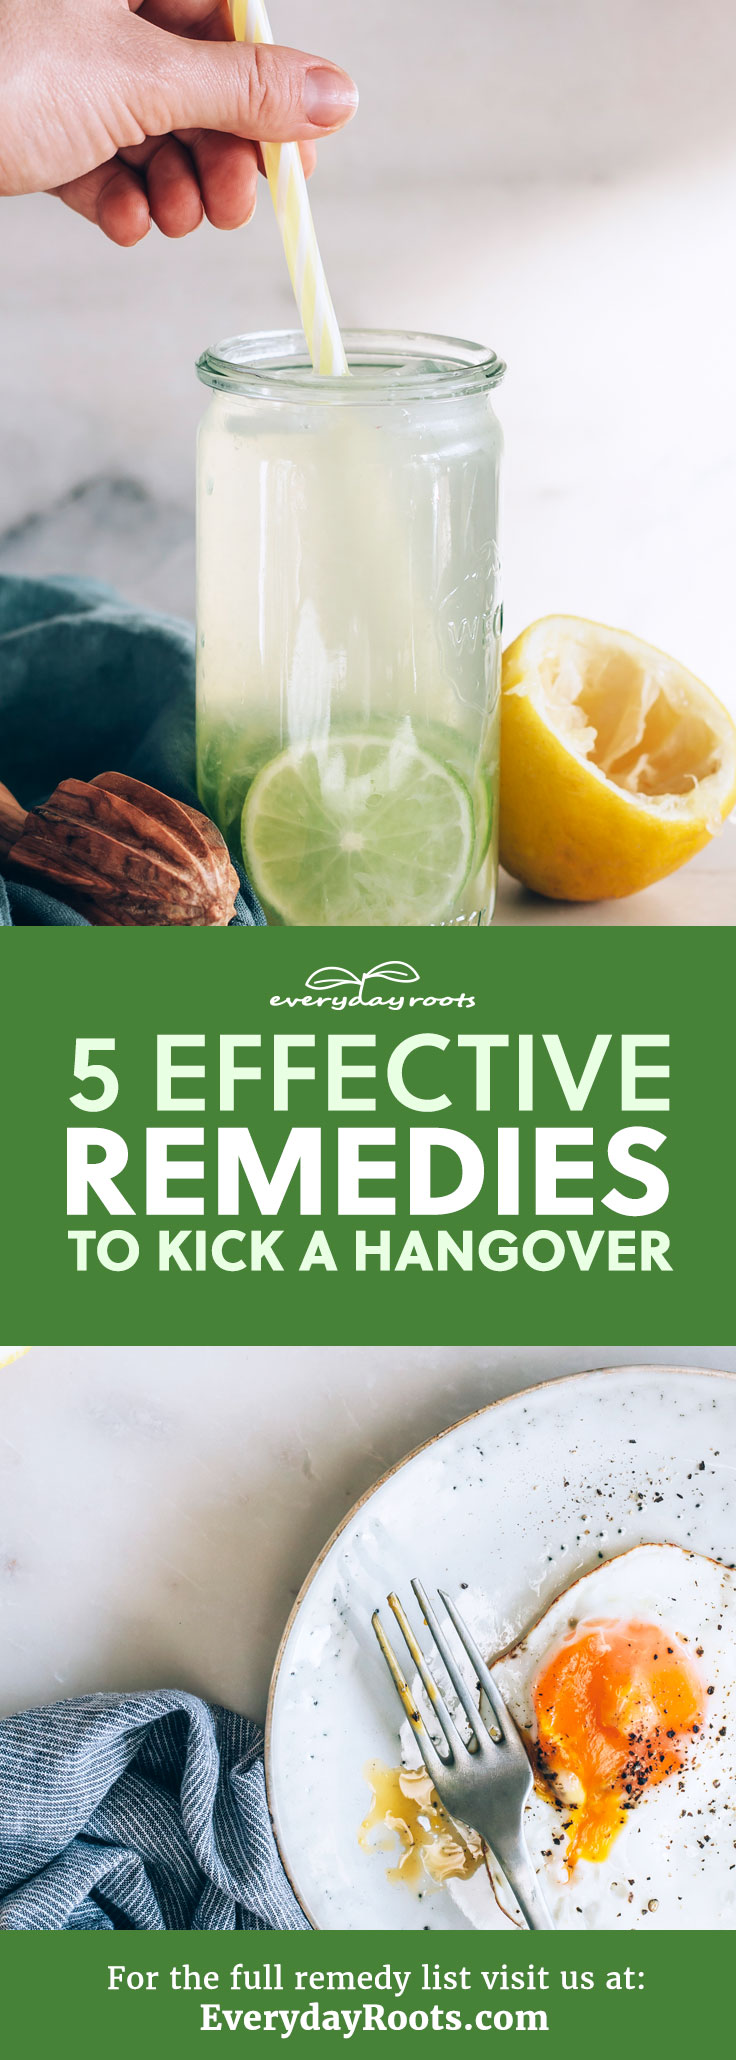 Here are 5 effective remedies to get rid of a hangover, including- a citrus drink, a popular breakfast staple and more.